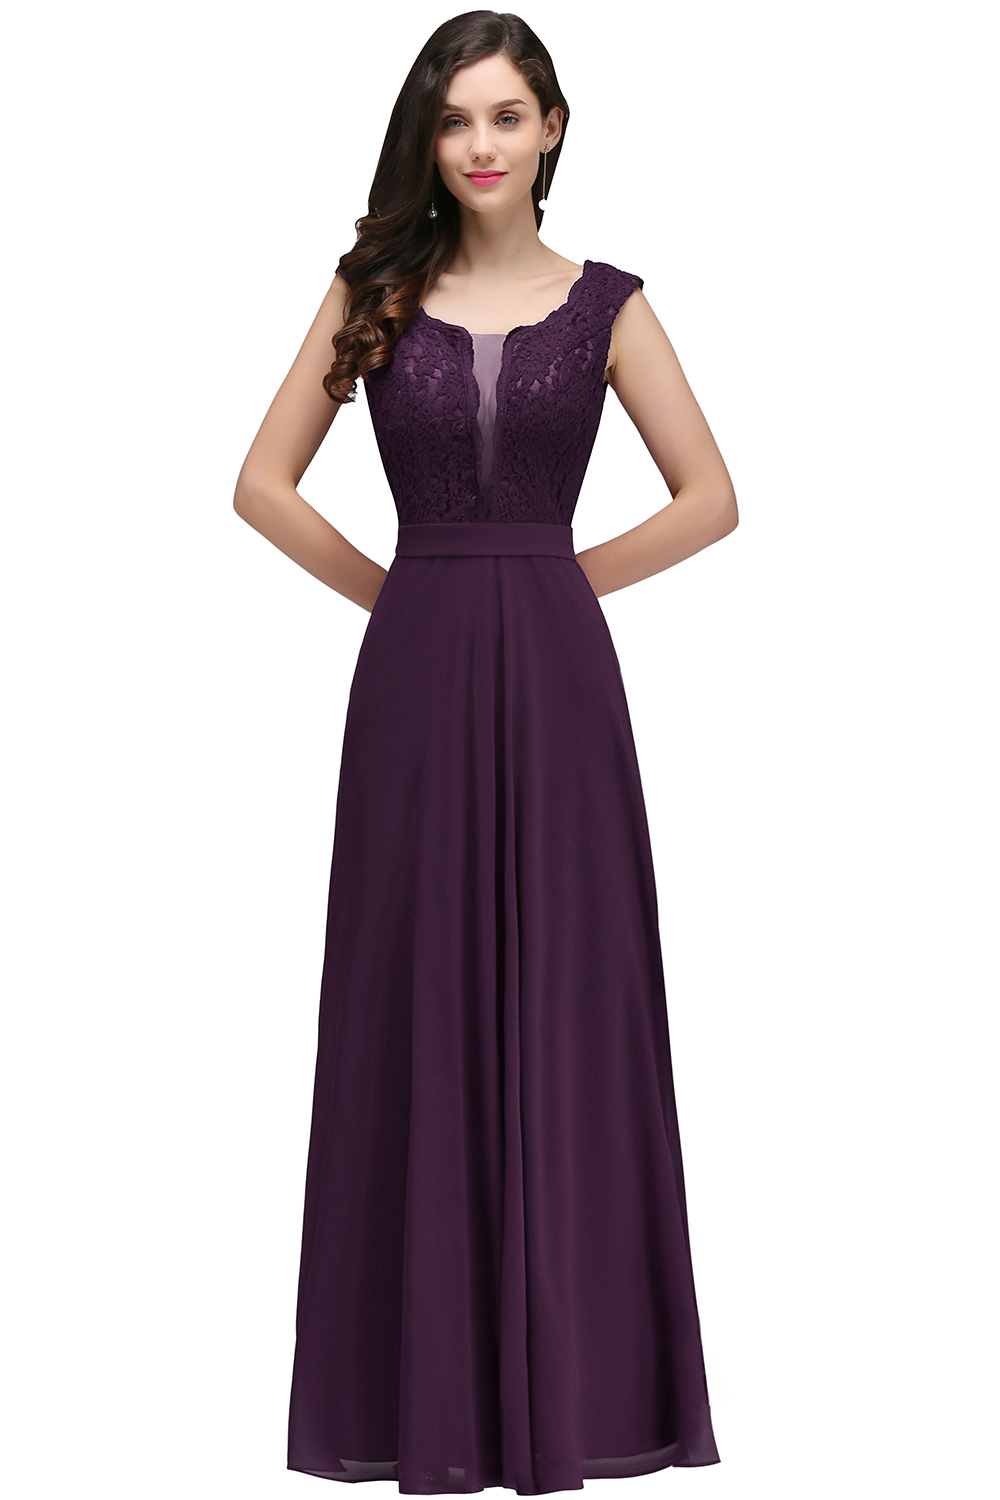 2019 Burgundy Chiffon Long Prom Dresses Scoop Neck Sleeveless Prom Gown Vestidos de gala in Prom Dresses from Weddings Events